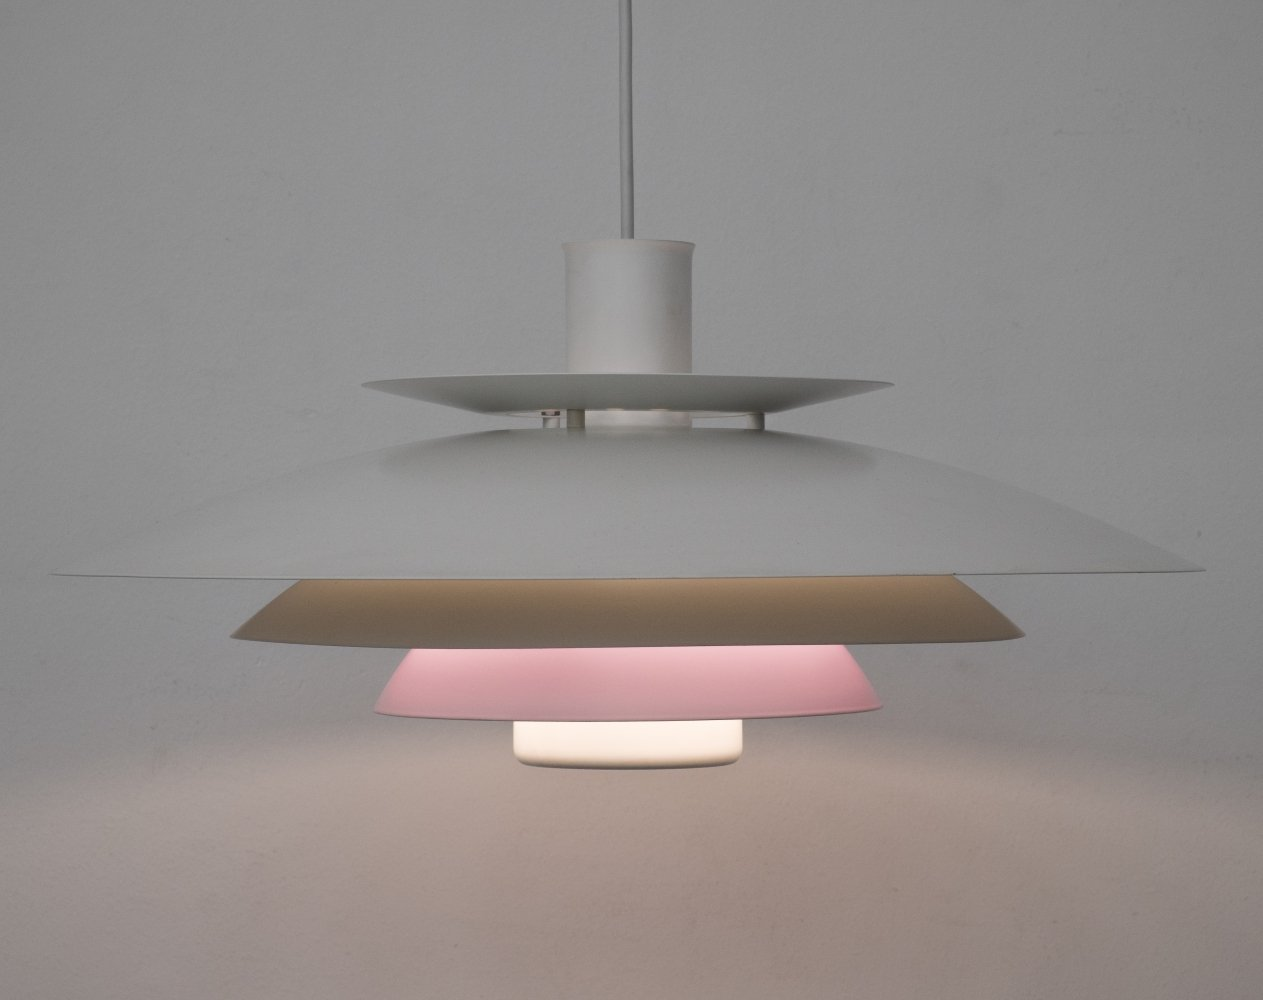 Hanging lamp by Form Light, Denmark 1980s